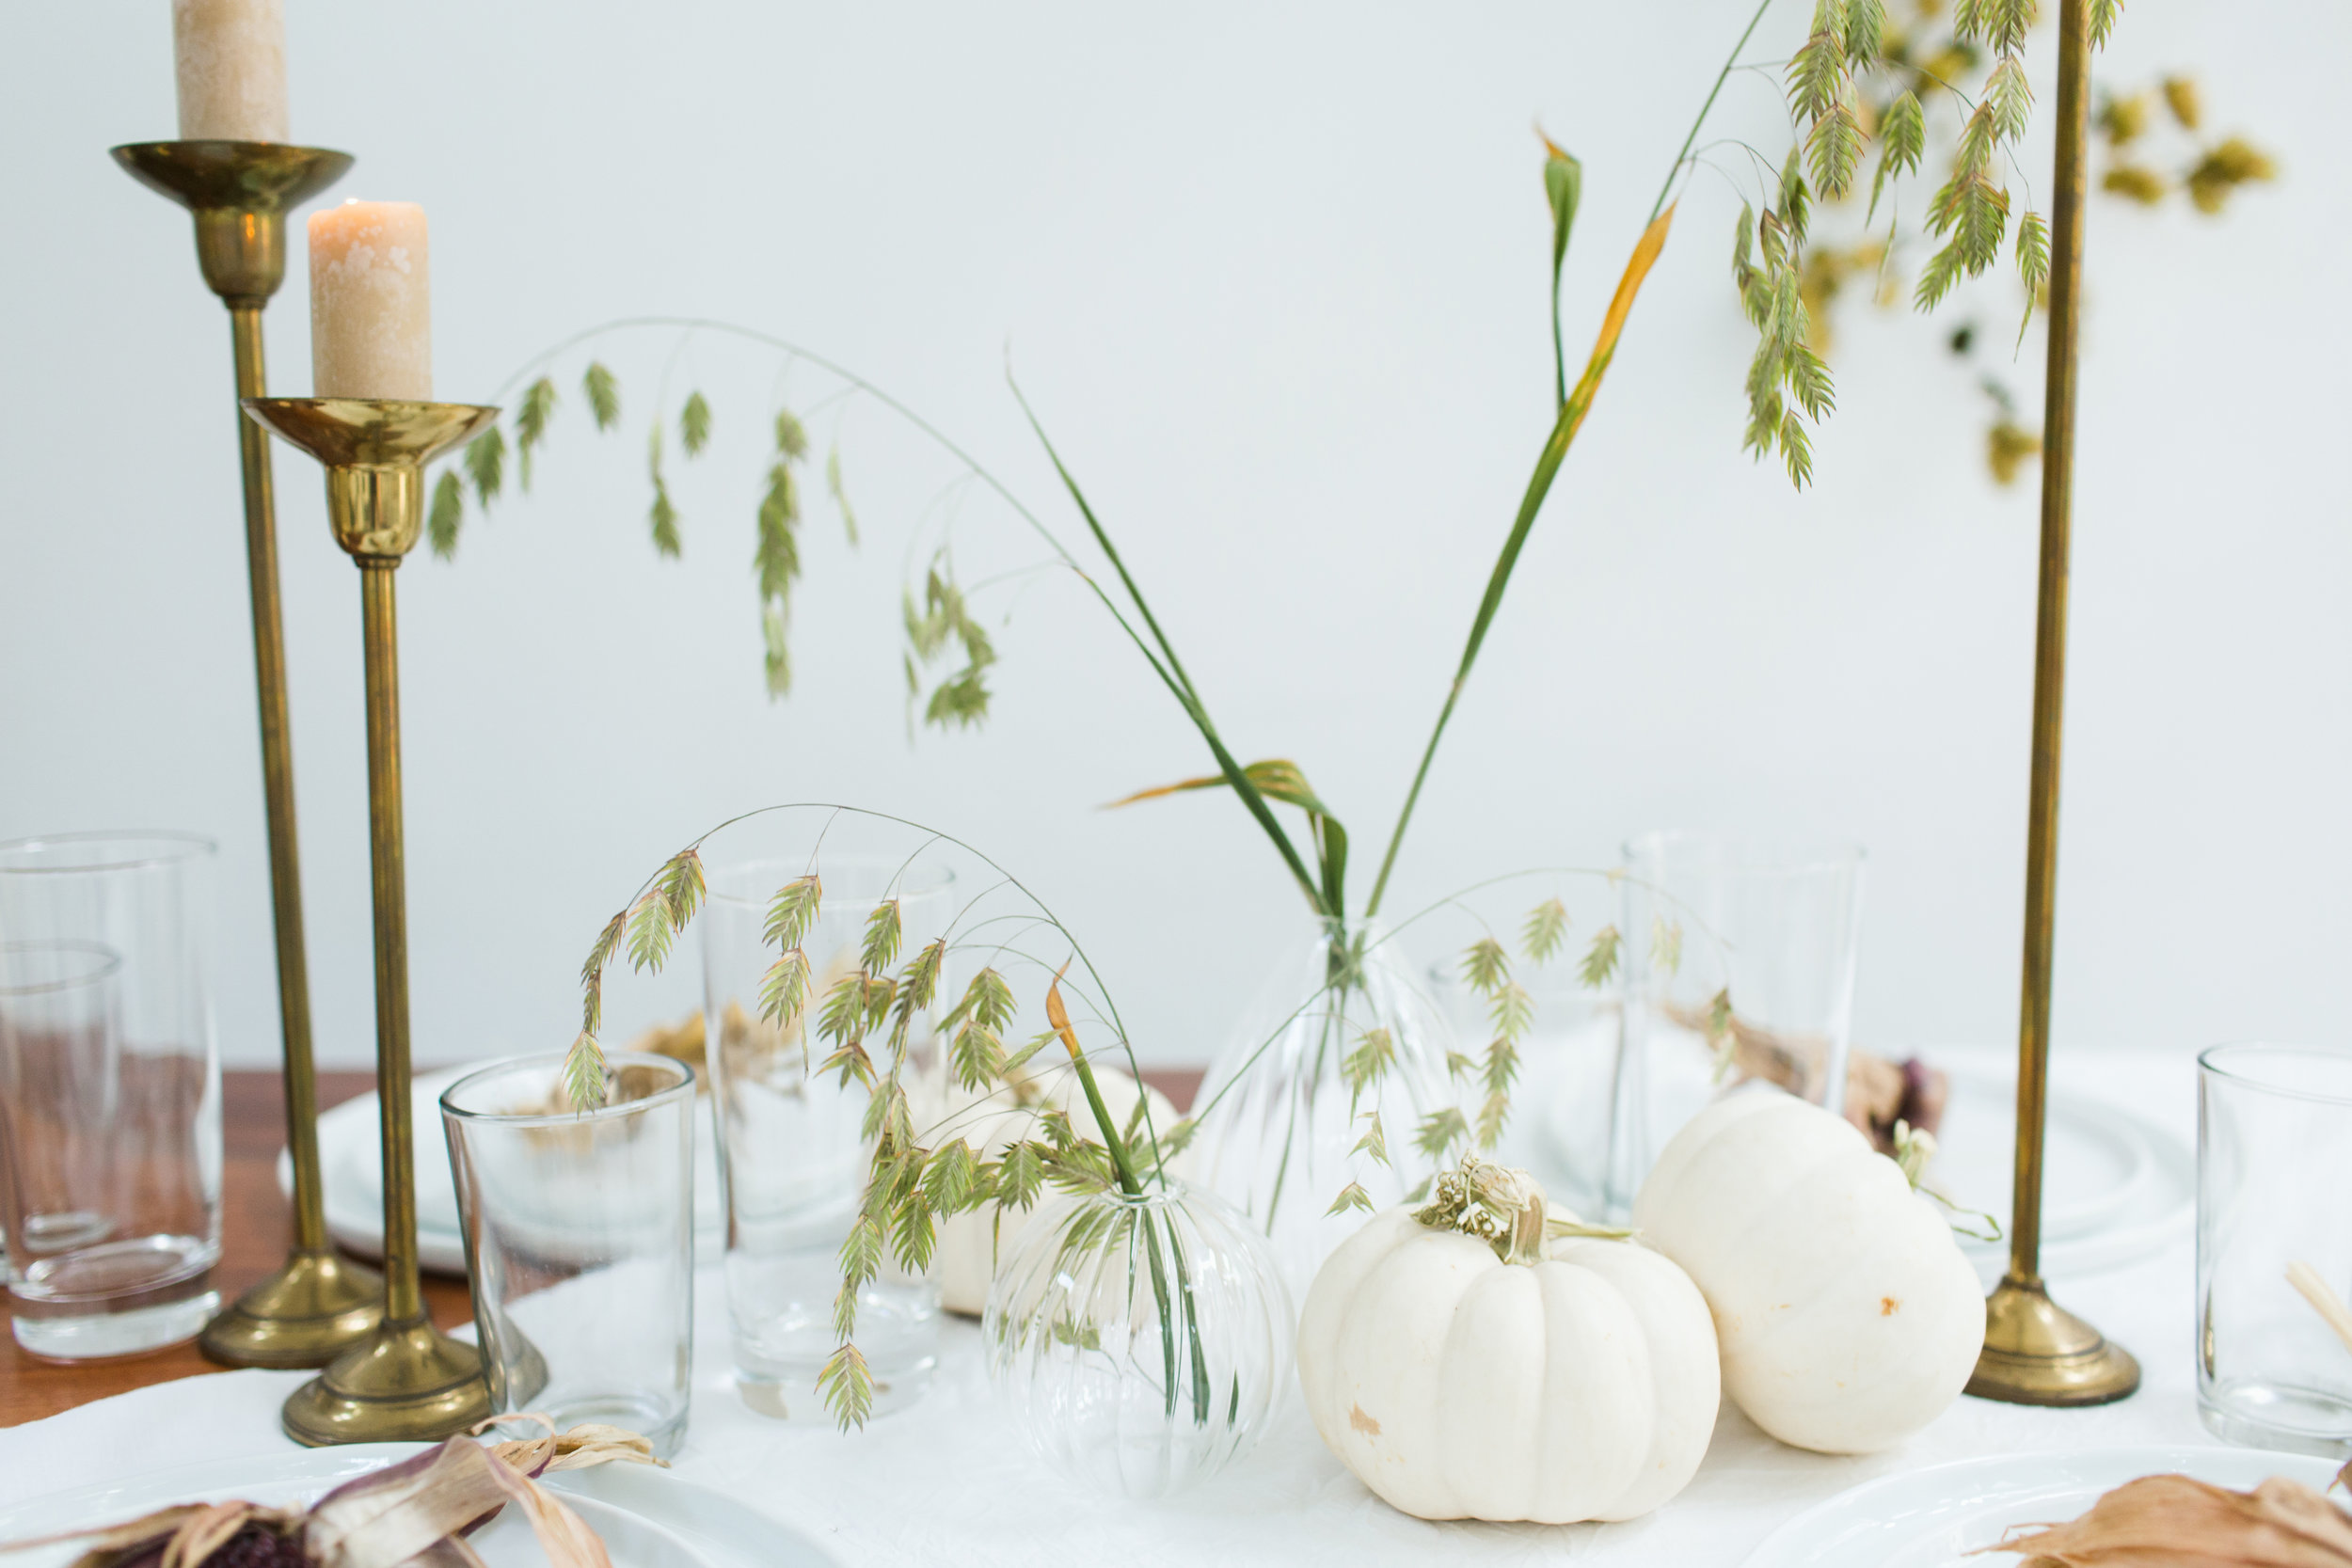 Paige-Newton-Photography-Austin-Florist-Fall-Tablescape-004.jpg